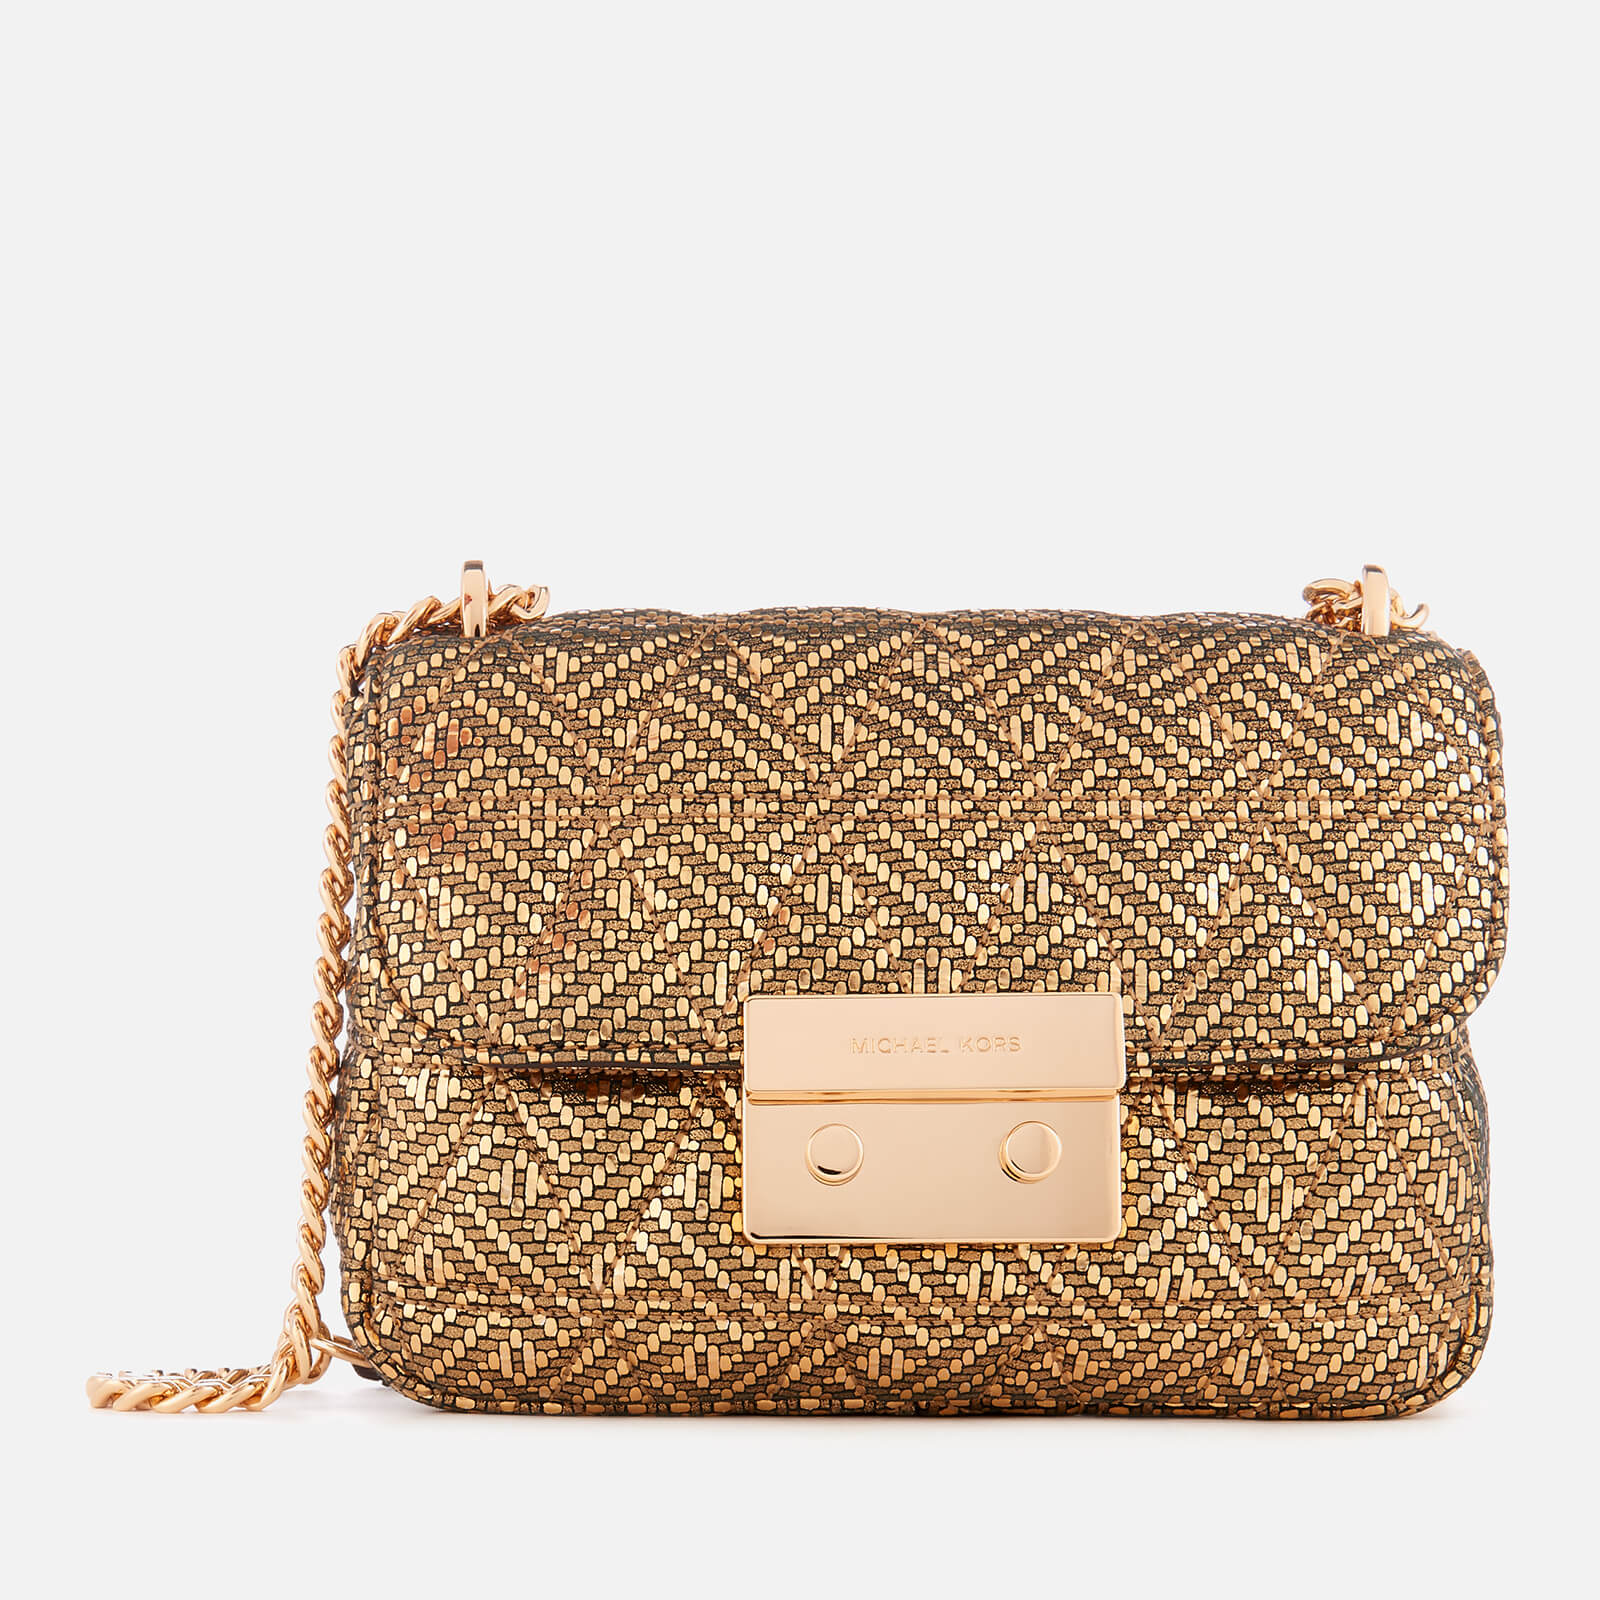 603d675365b9 MICHAEL MICHAEL KORS Women's Sloan Small Chain Shoulder Bag - Gold - Free  UK Delivery over £50